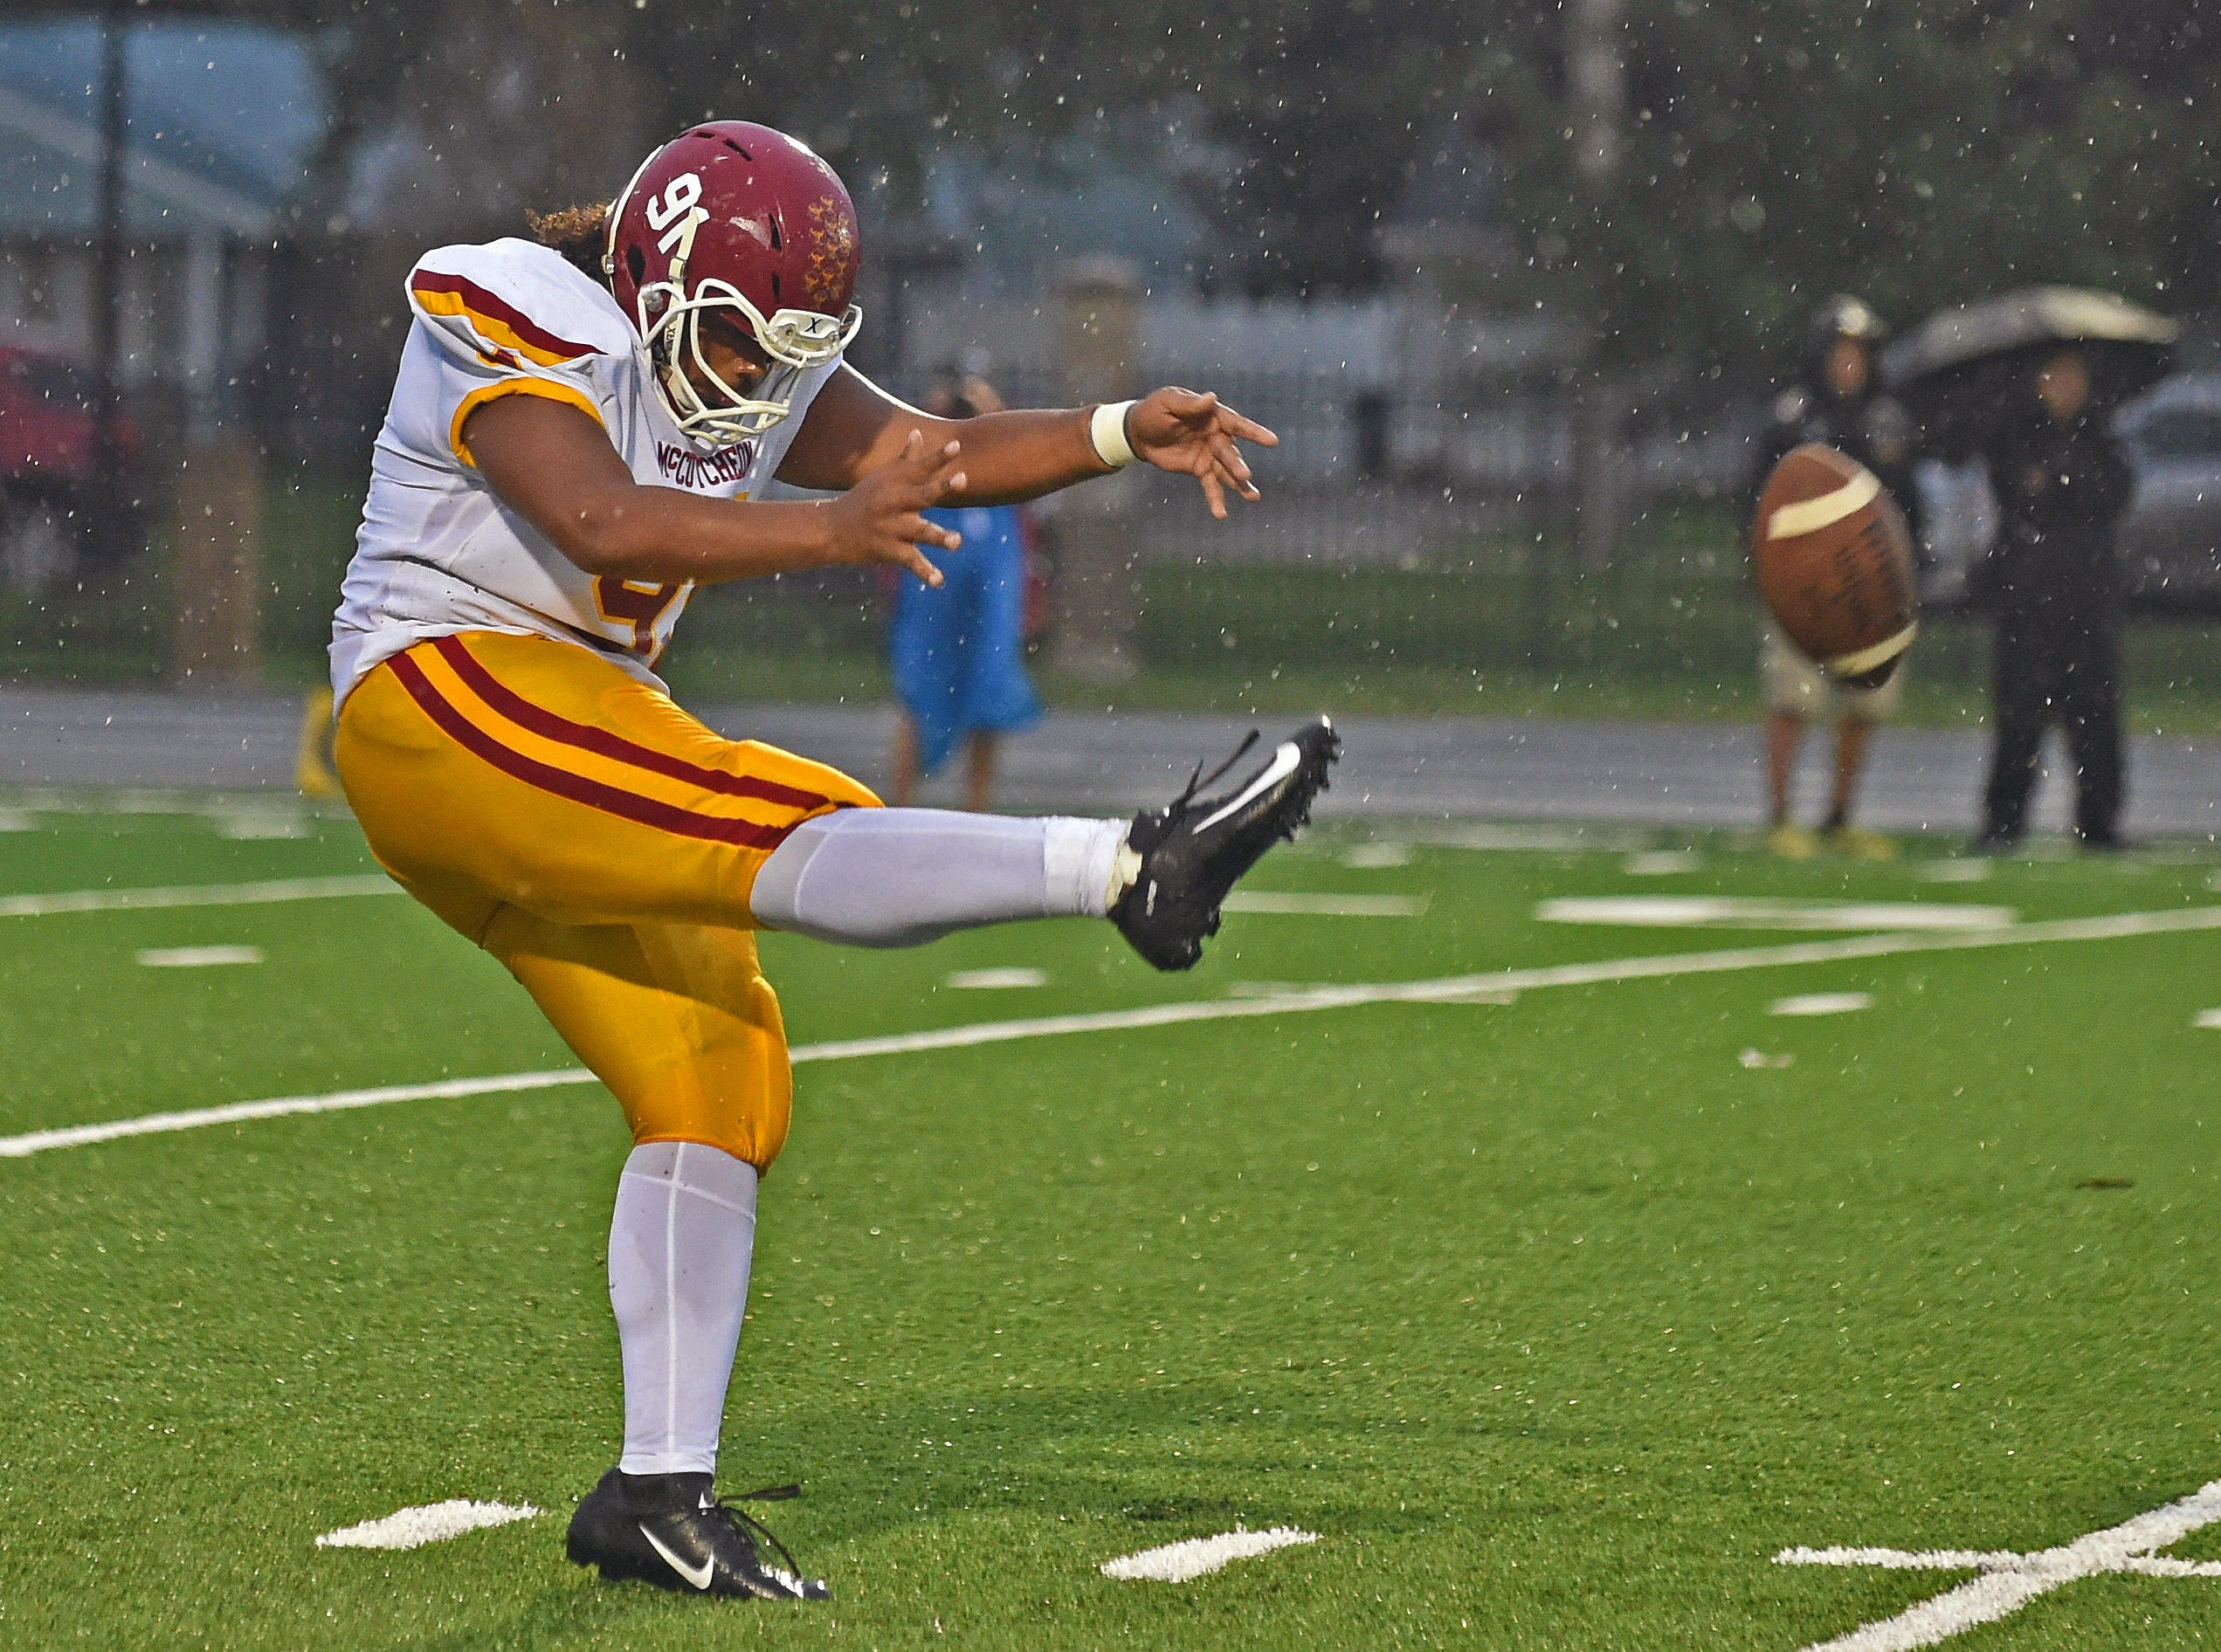 A rainy night of football in Kokomo as the Mavericks skin the Wildkats. Kenny Fields.